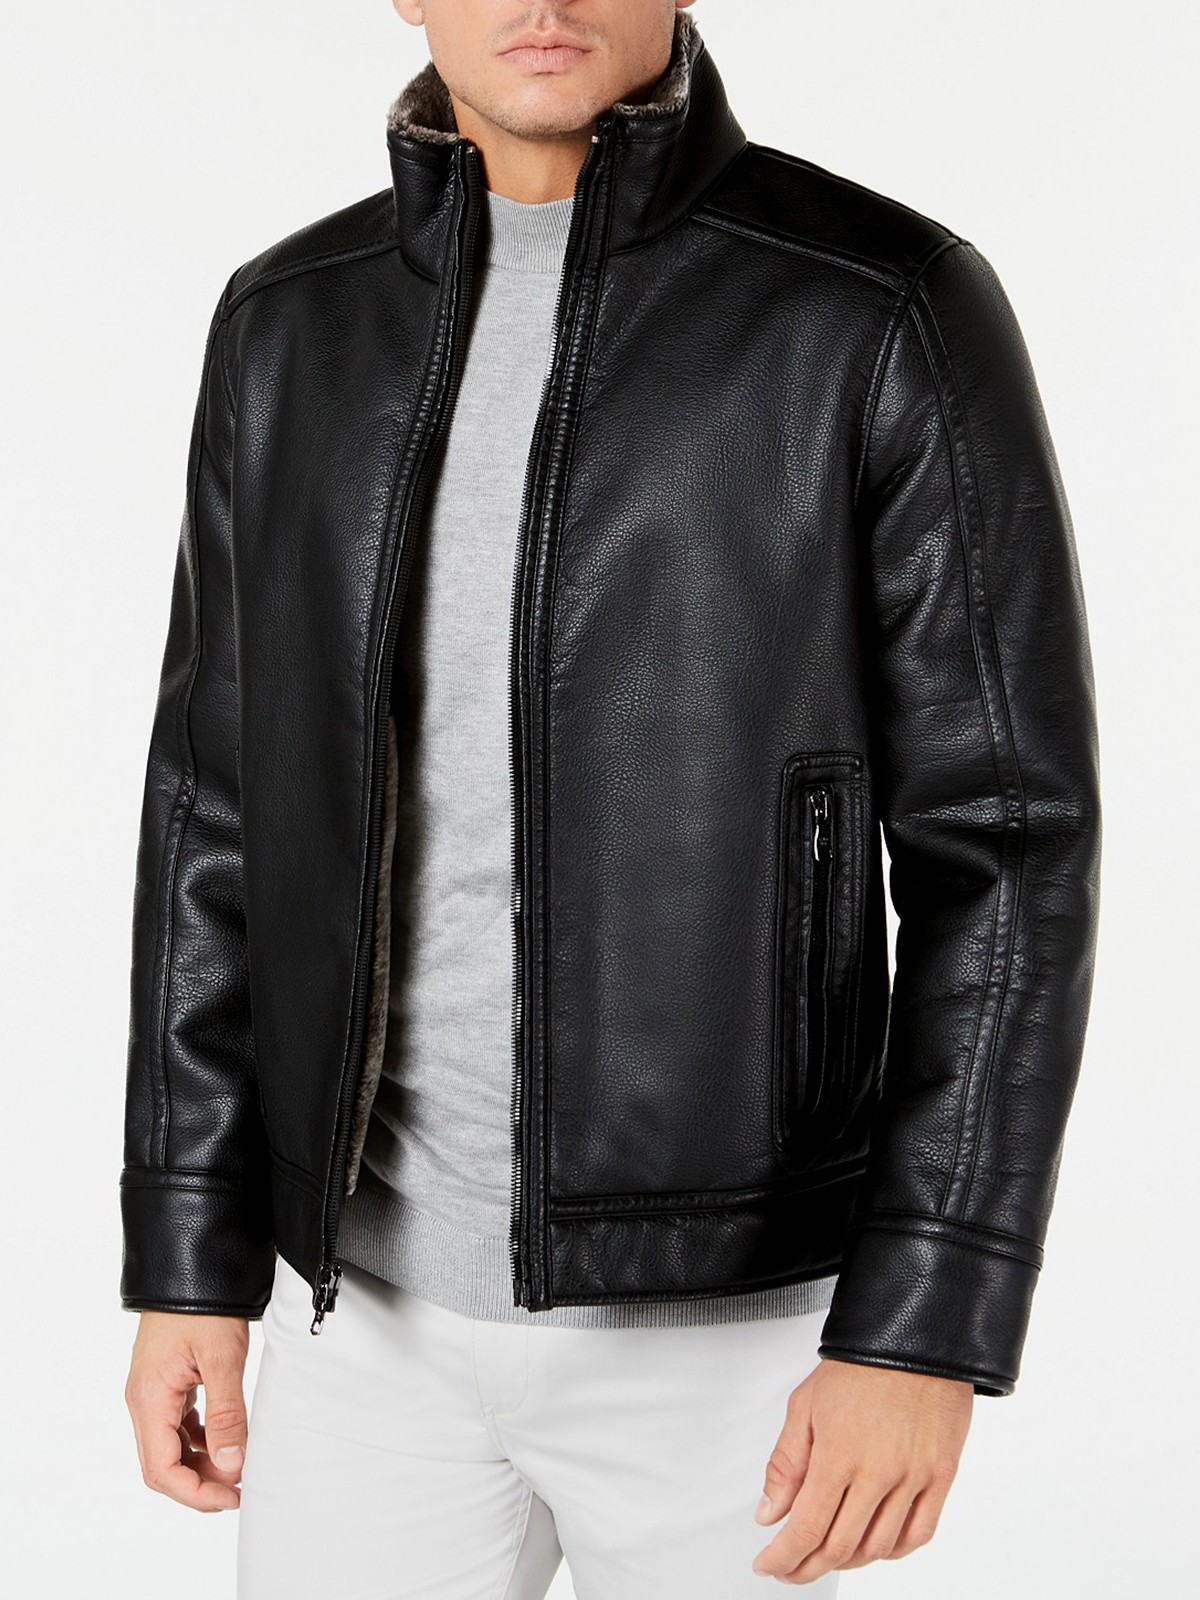 Mens-Faux-Leather-Jacket-With-Faux-Shearling-Lining-Zoom-1-1-1-1.jpg